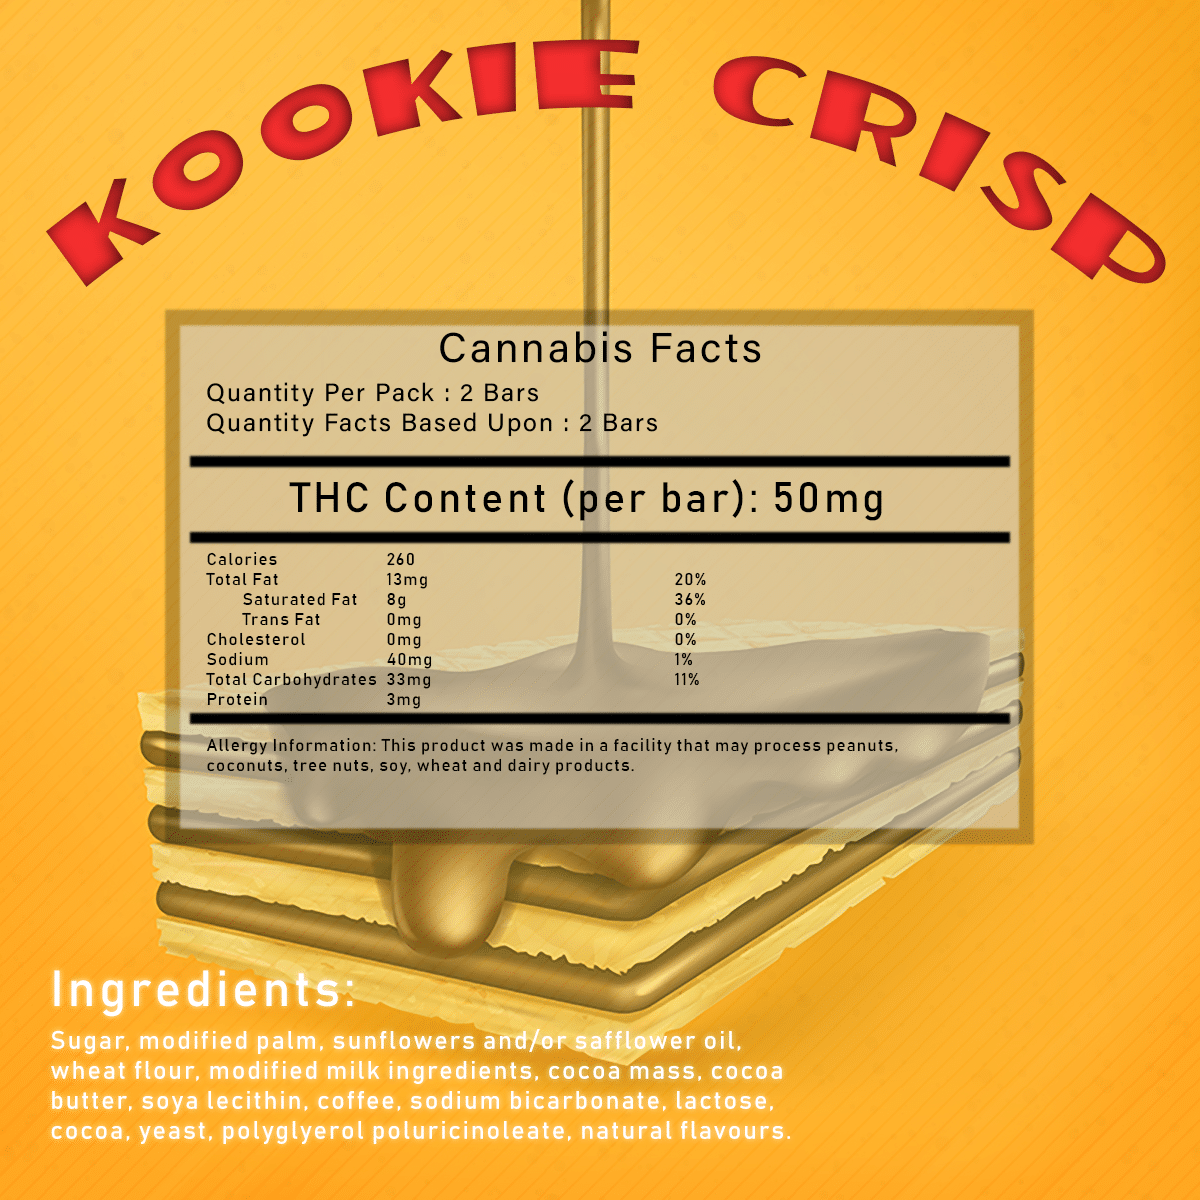 Kookie Crisp by Herbivores Edibles by Green Society - Image © 2018 Green Society. All Rights Reserved.